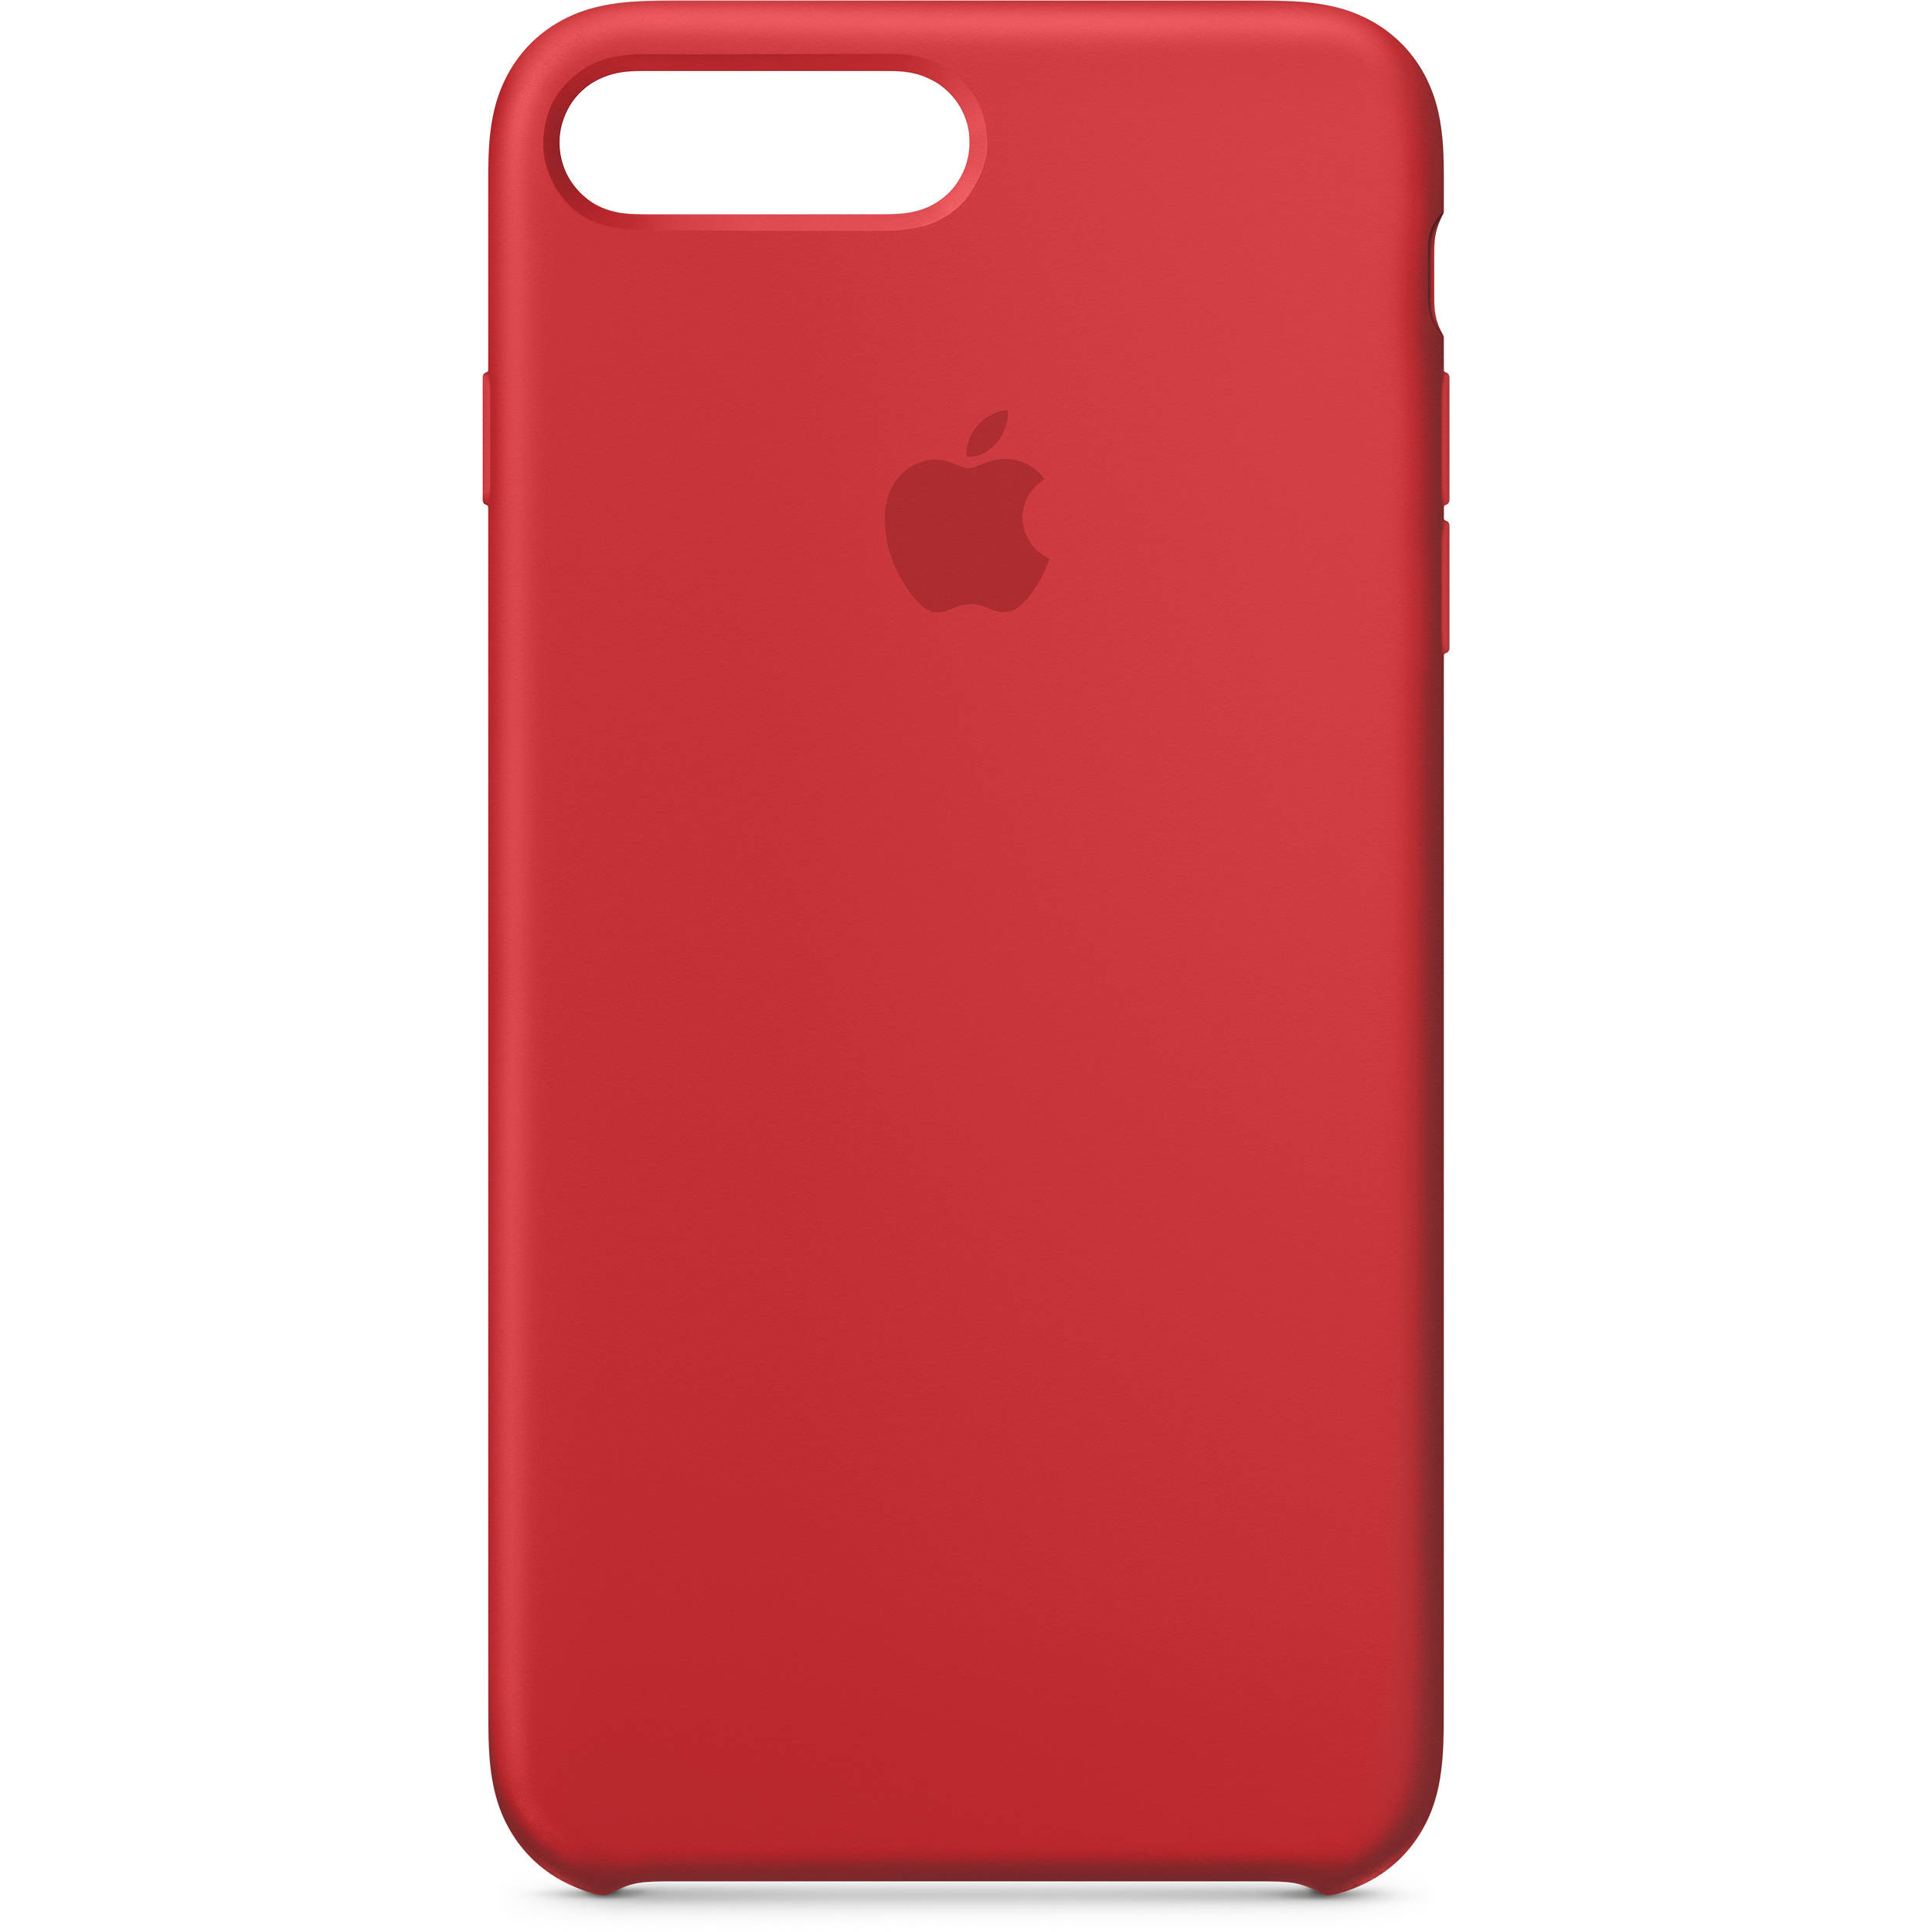 e6014eaec Apple iPhone 7 Plus 8 Plus Silicone Case ((PRODUCT)RED)